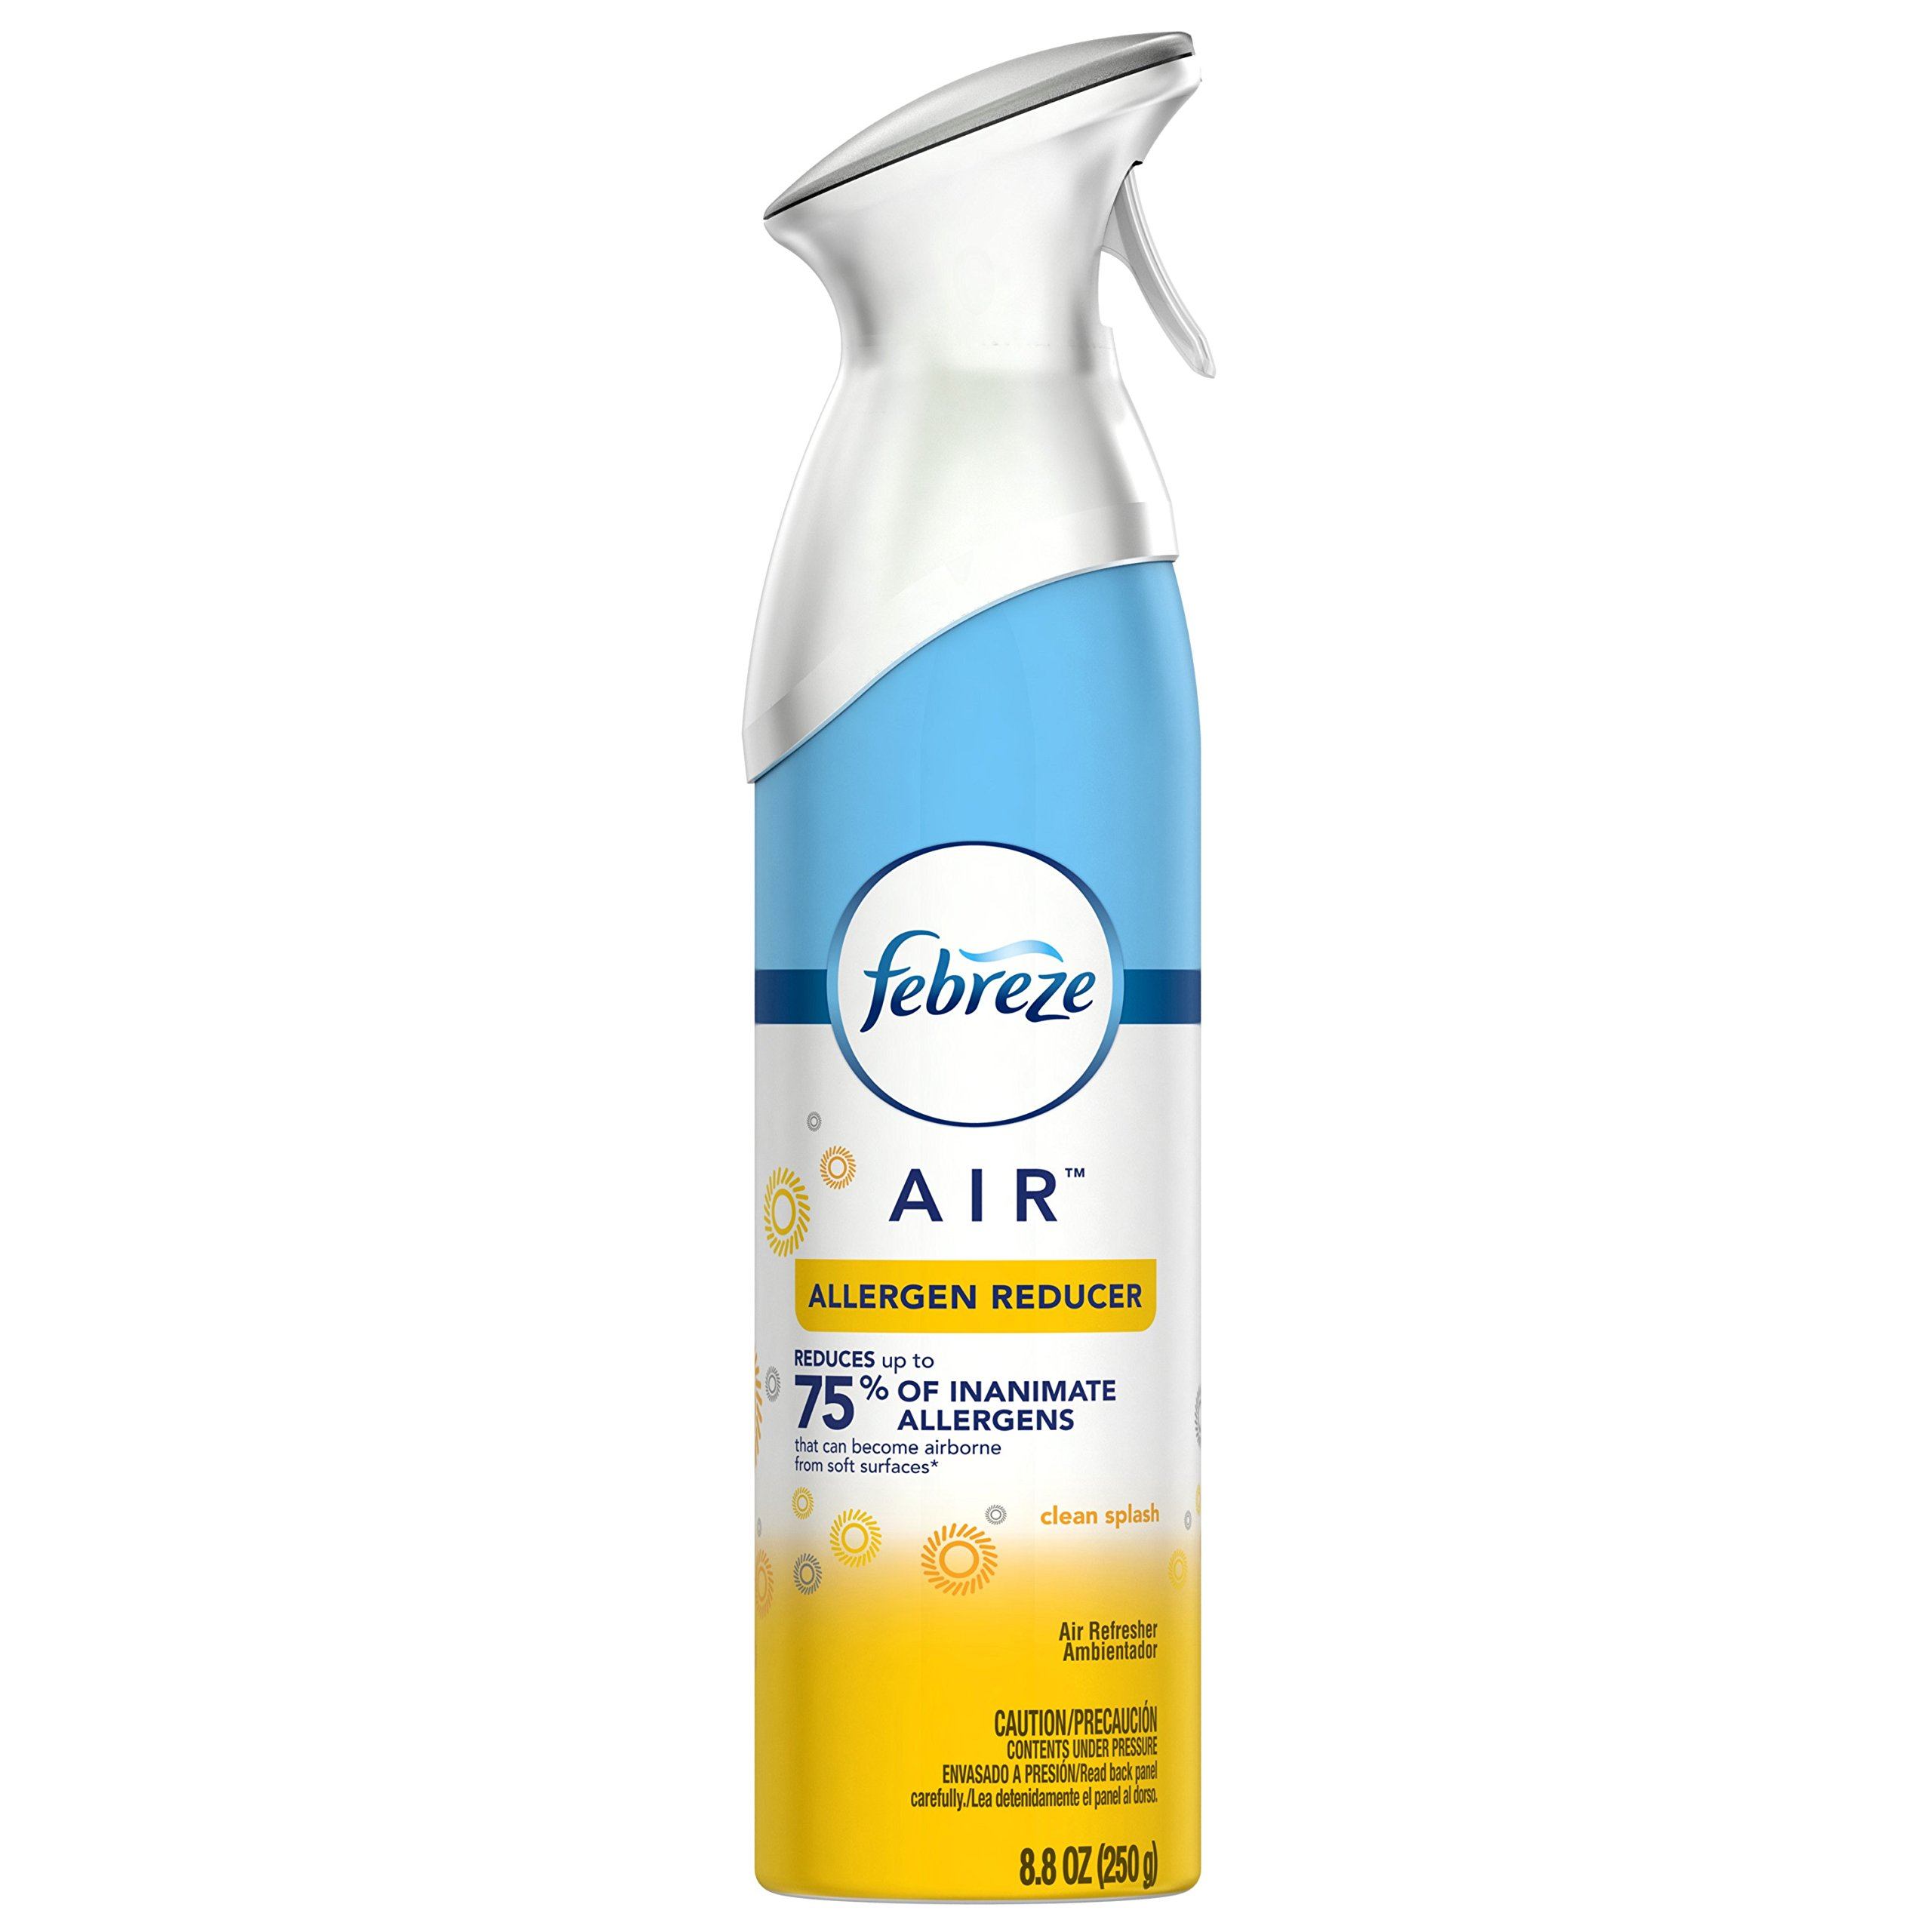 Febreze AIR Effects Air Freshener Allergen Reducer Clean Splash, 8.8 oz (Pack of 6)